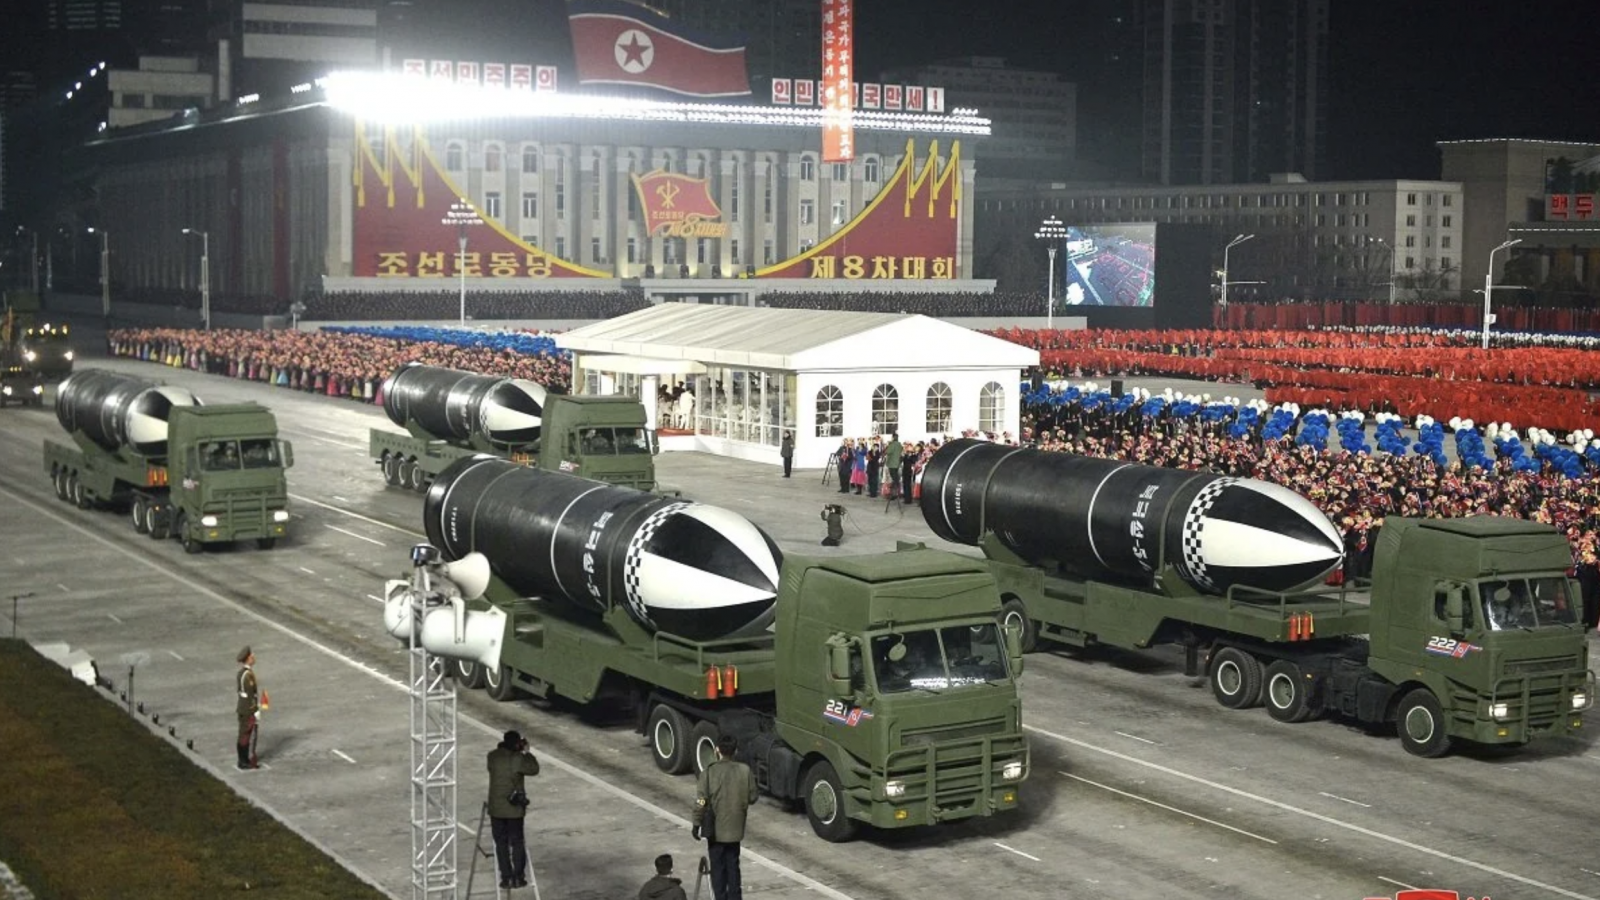 Four green military trucks carrying large submarine launched missiles proceed in a nighttime parade in North Korea.